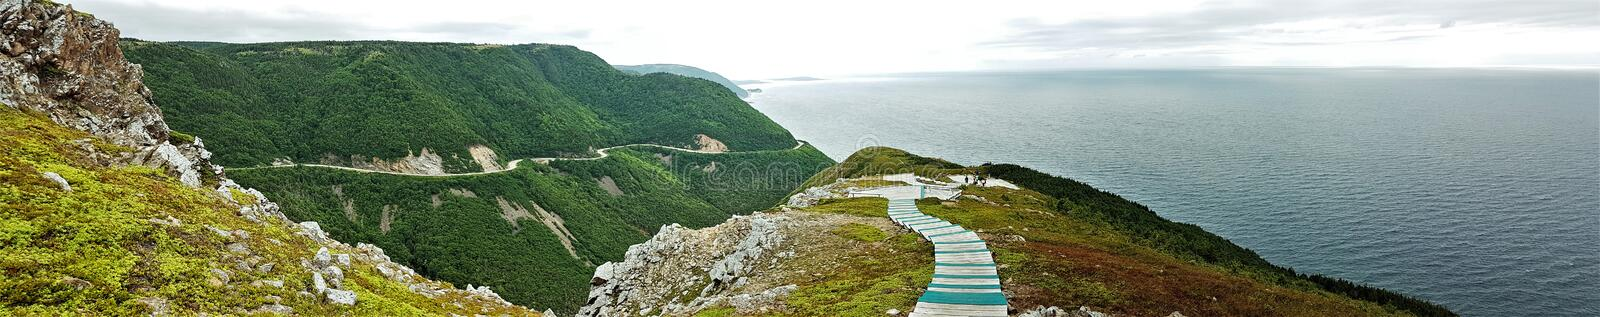 Cabot Trail - Cape Breton - Canada. Panoramic view from the Cabot Trail, Cape Breton, Canada stock images